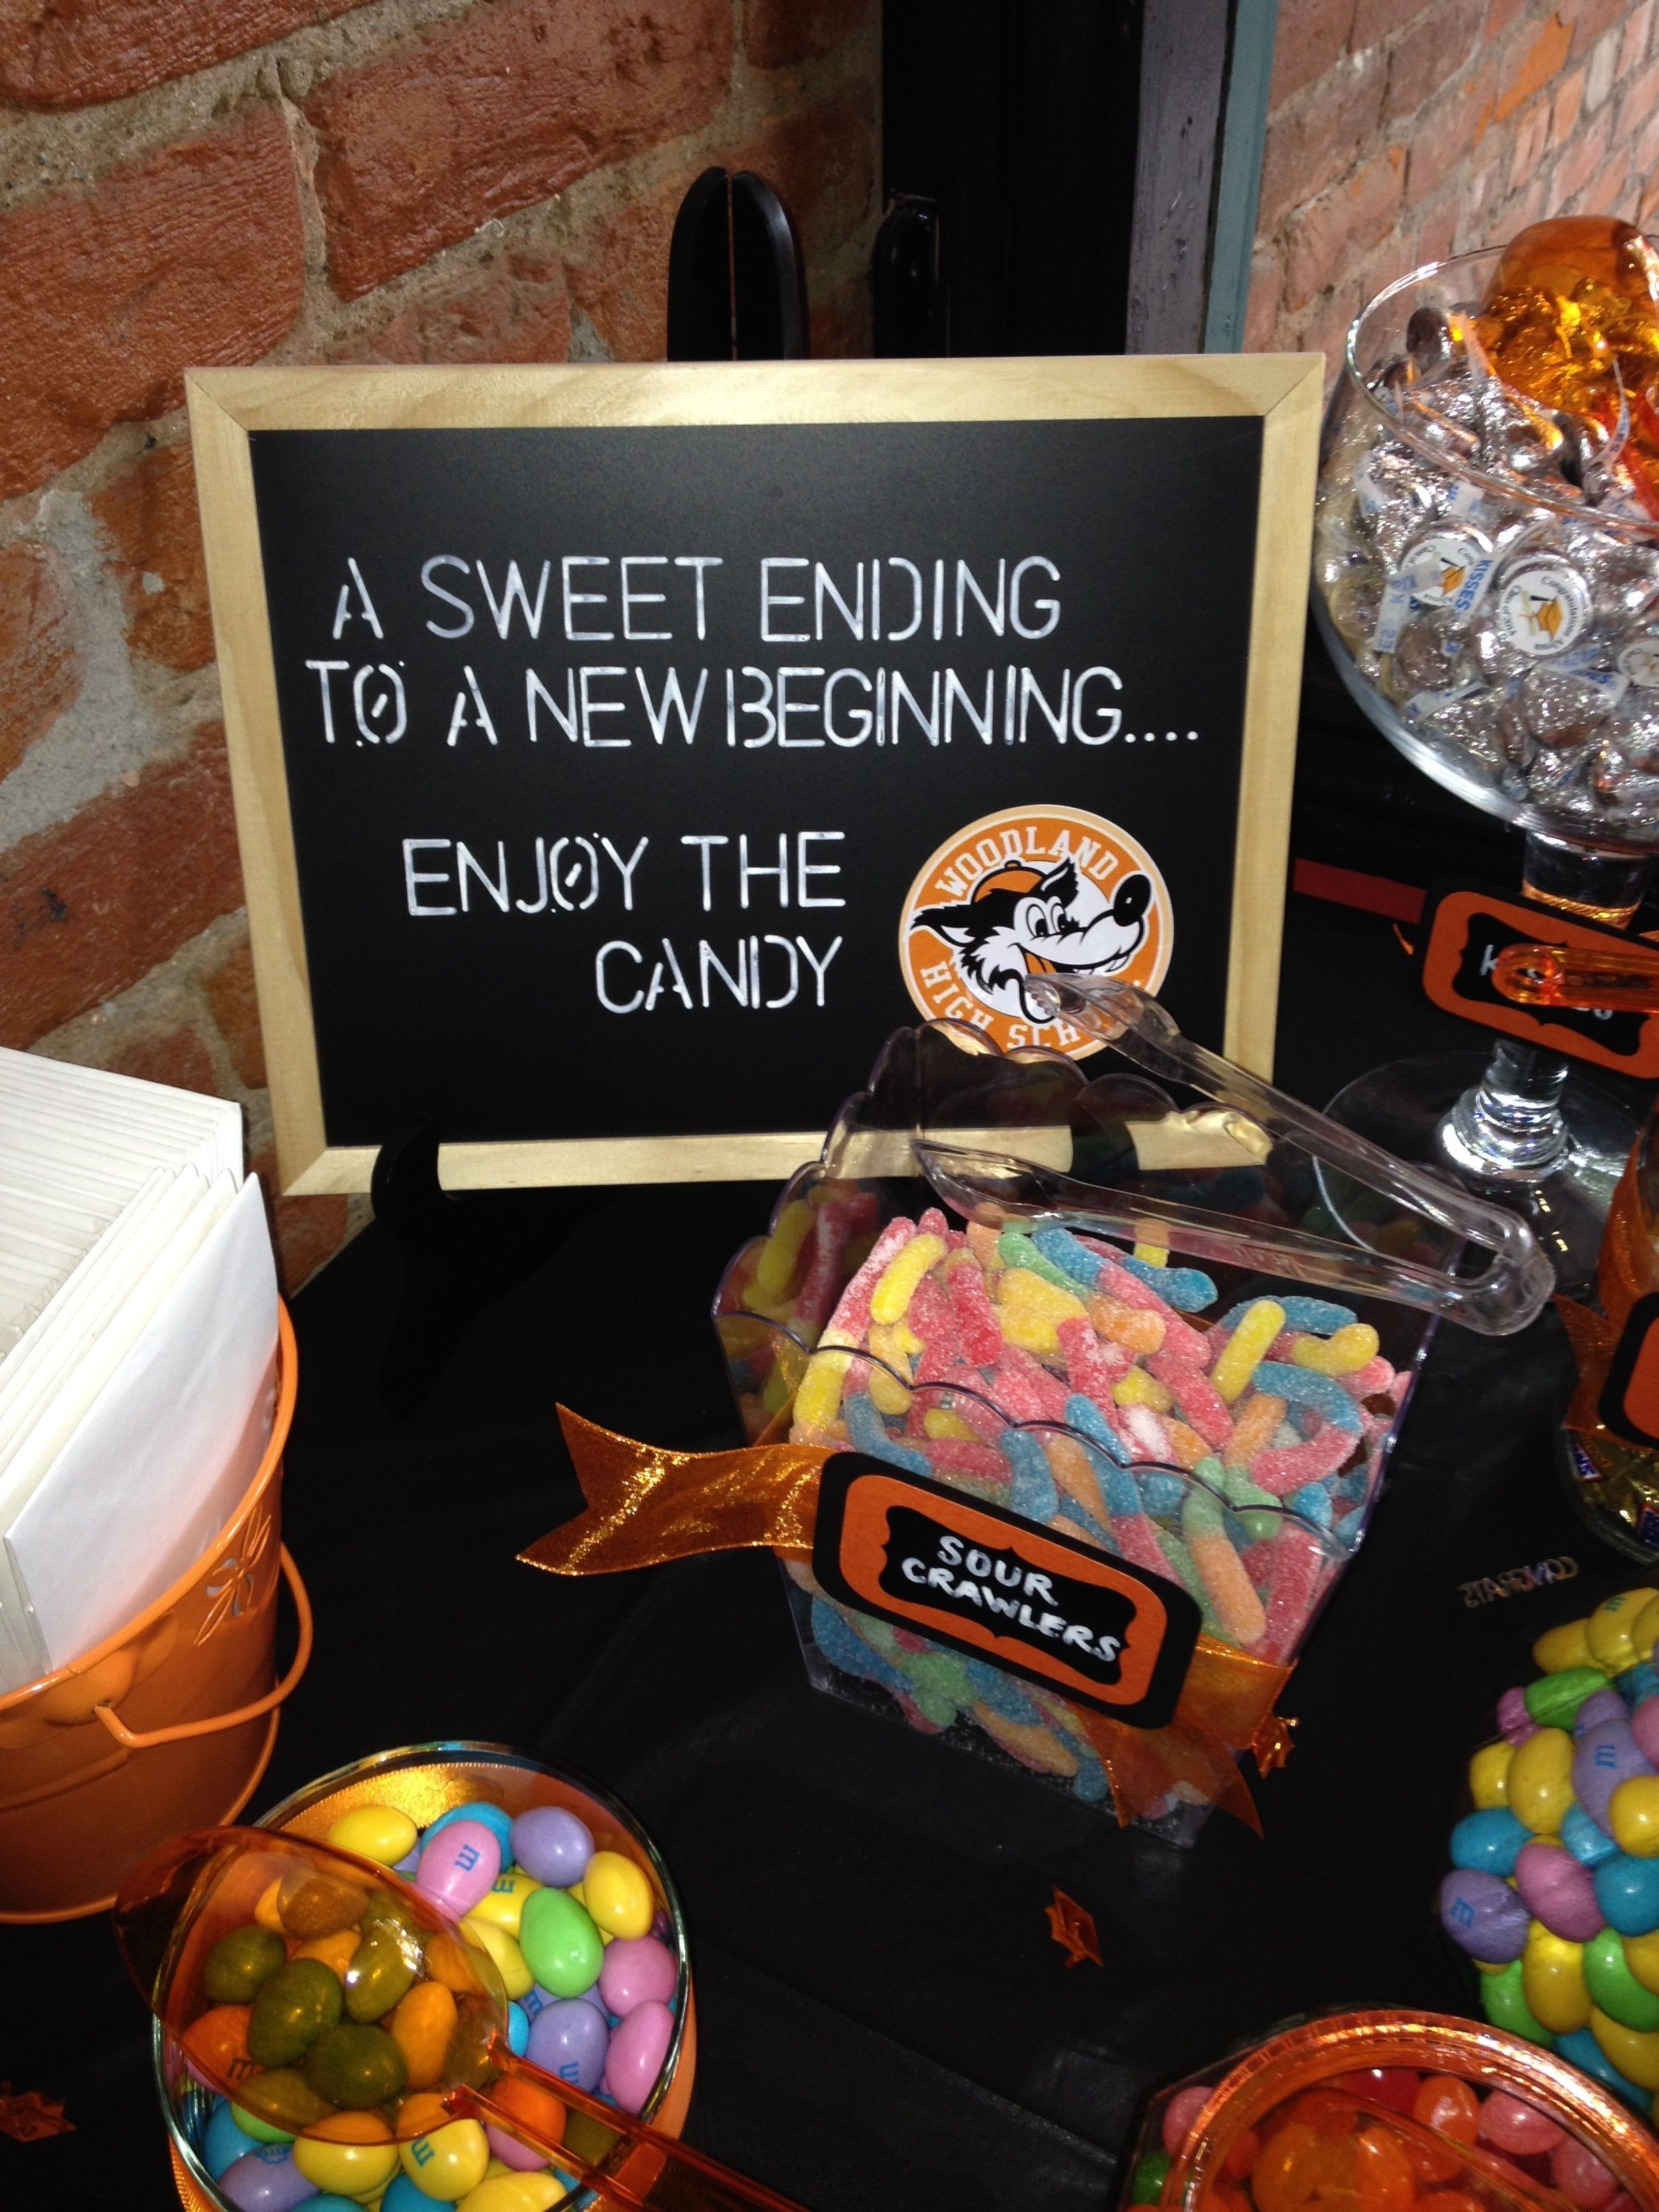 10 Fabulous Graduation Party Ideas For High School graduation party ideas candy bar sign graduation decorations 5 2020